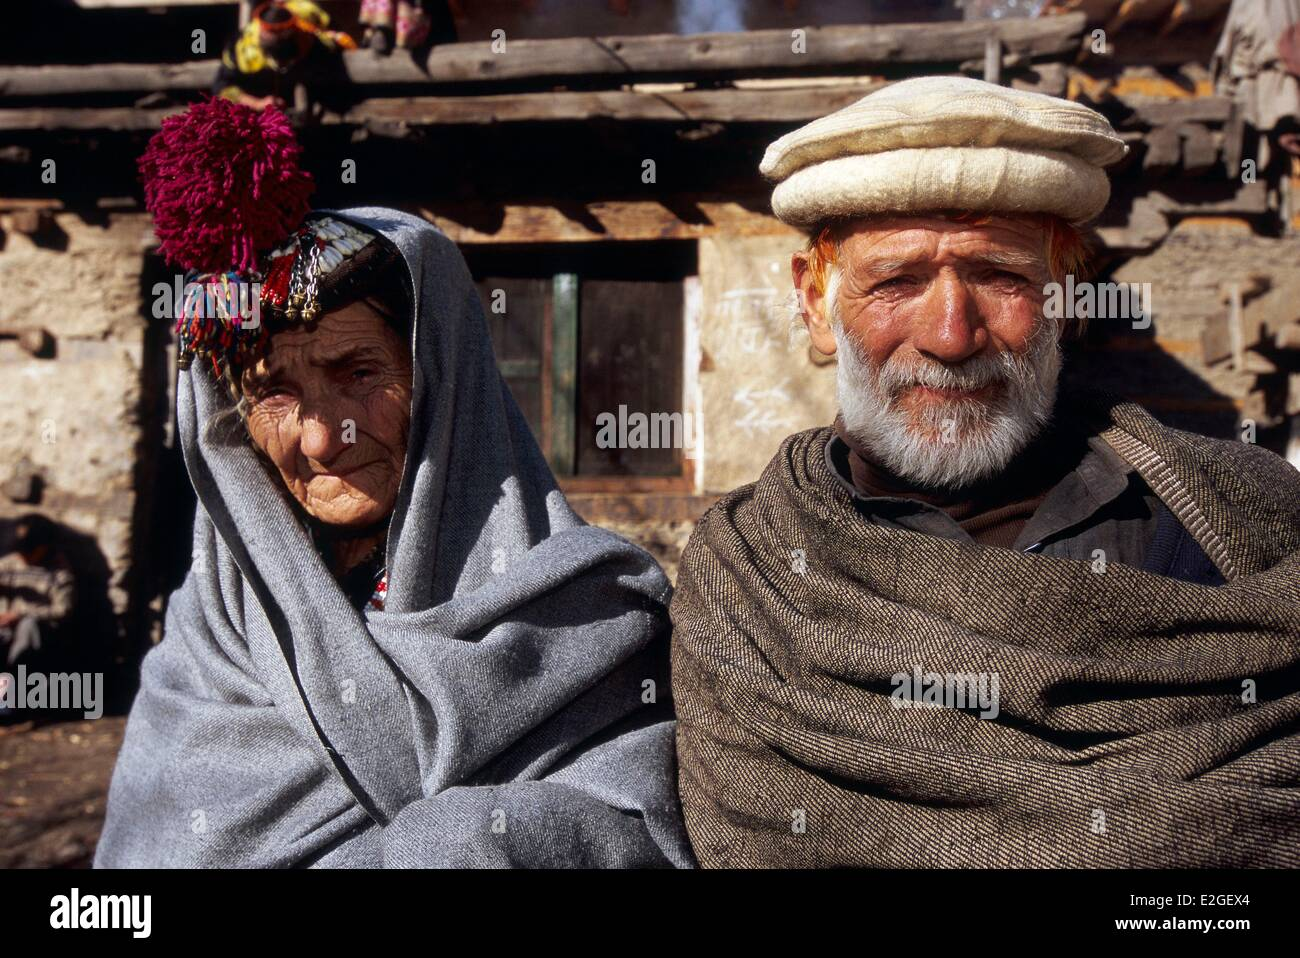 Pakistan Khyber Pakhtunkhwa Kalash valleys Bumburet valley elderly Couple wrapped in their winter shawl a bearded - Stock Image